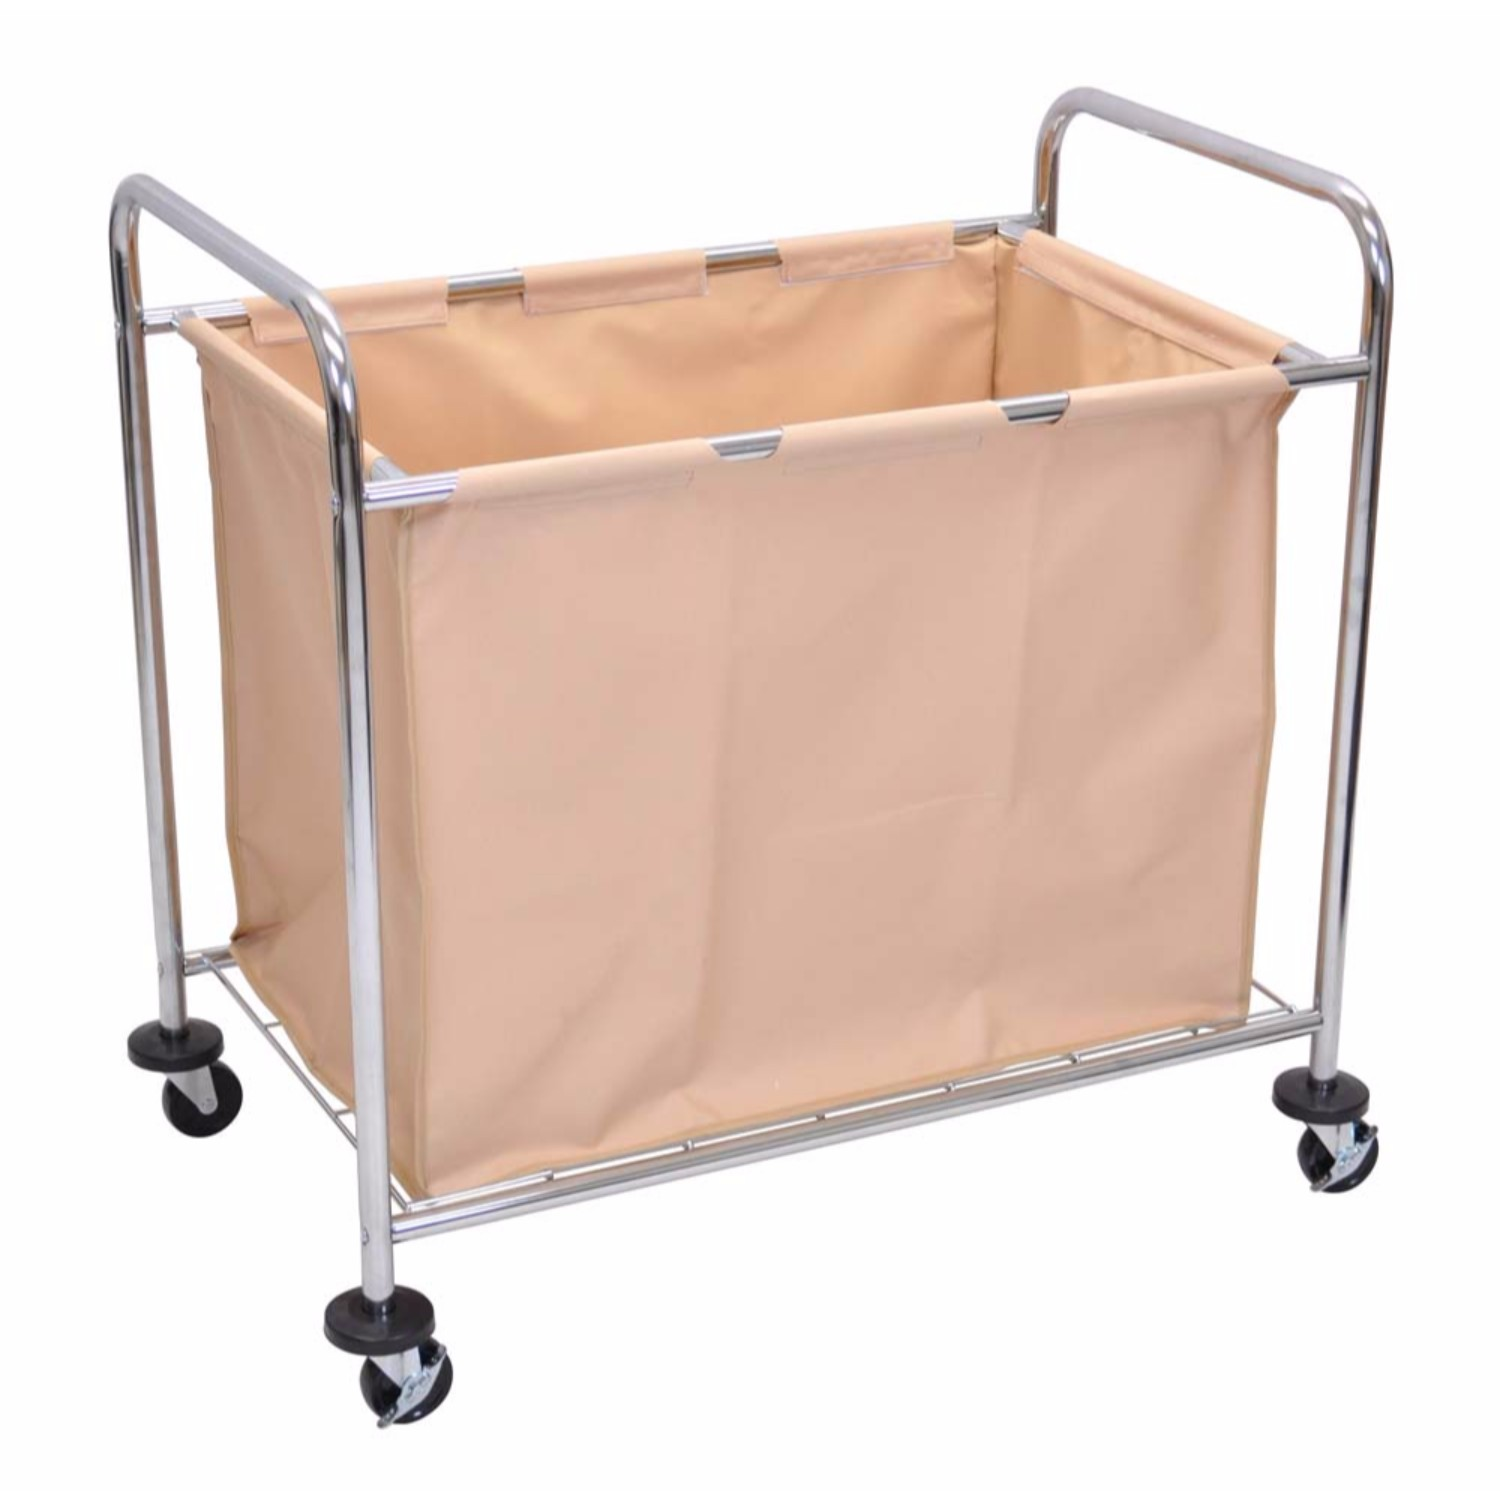 Luxor Heavy Duty Rolling Commercial Canvas Laundry Utility